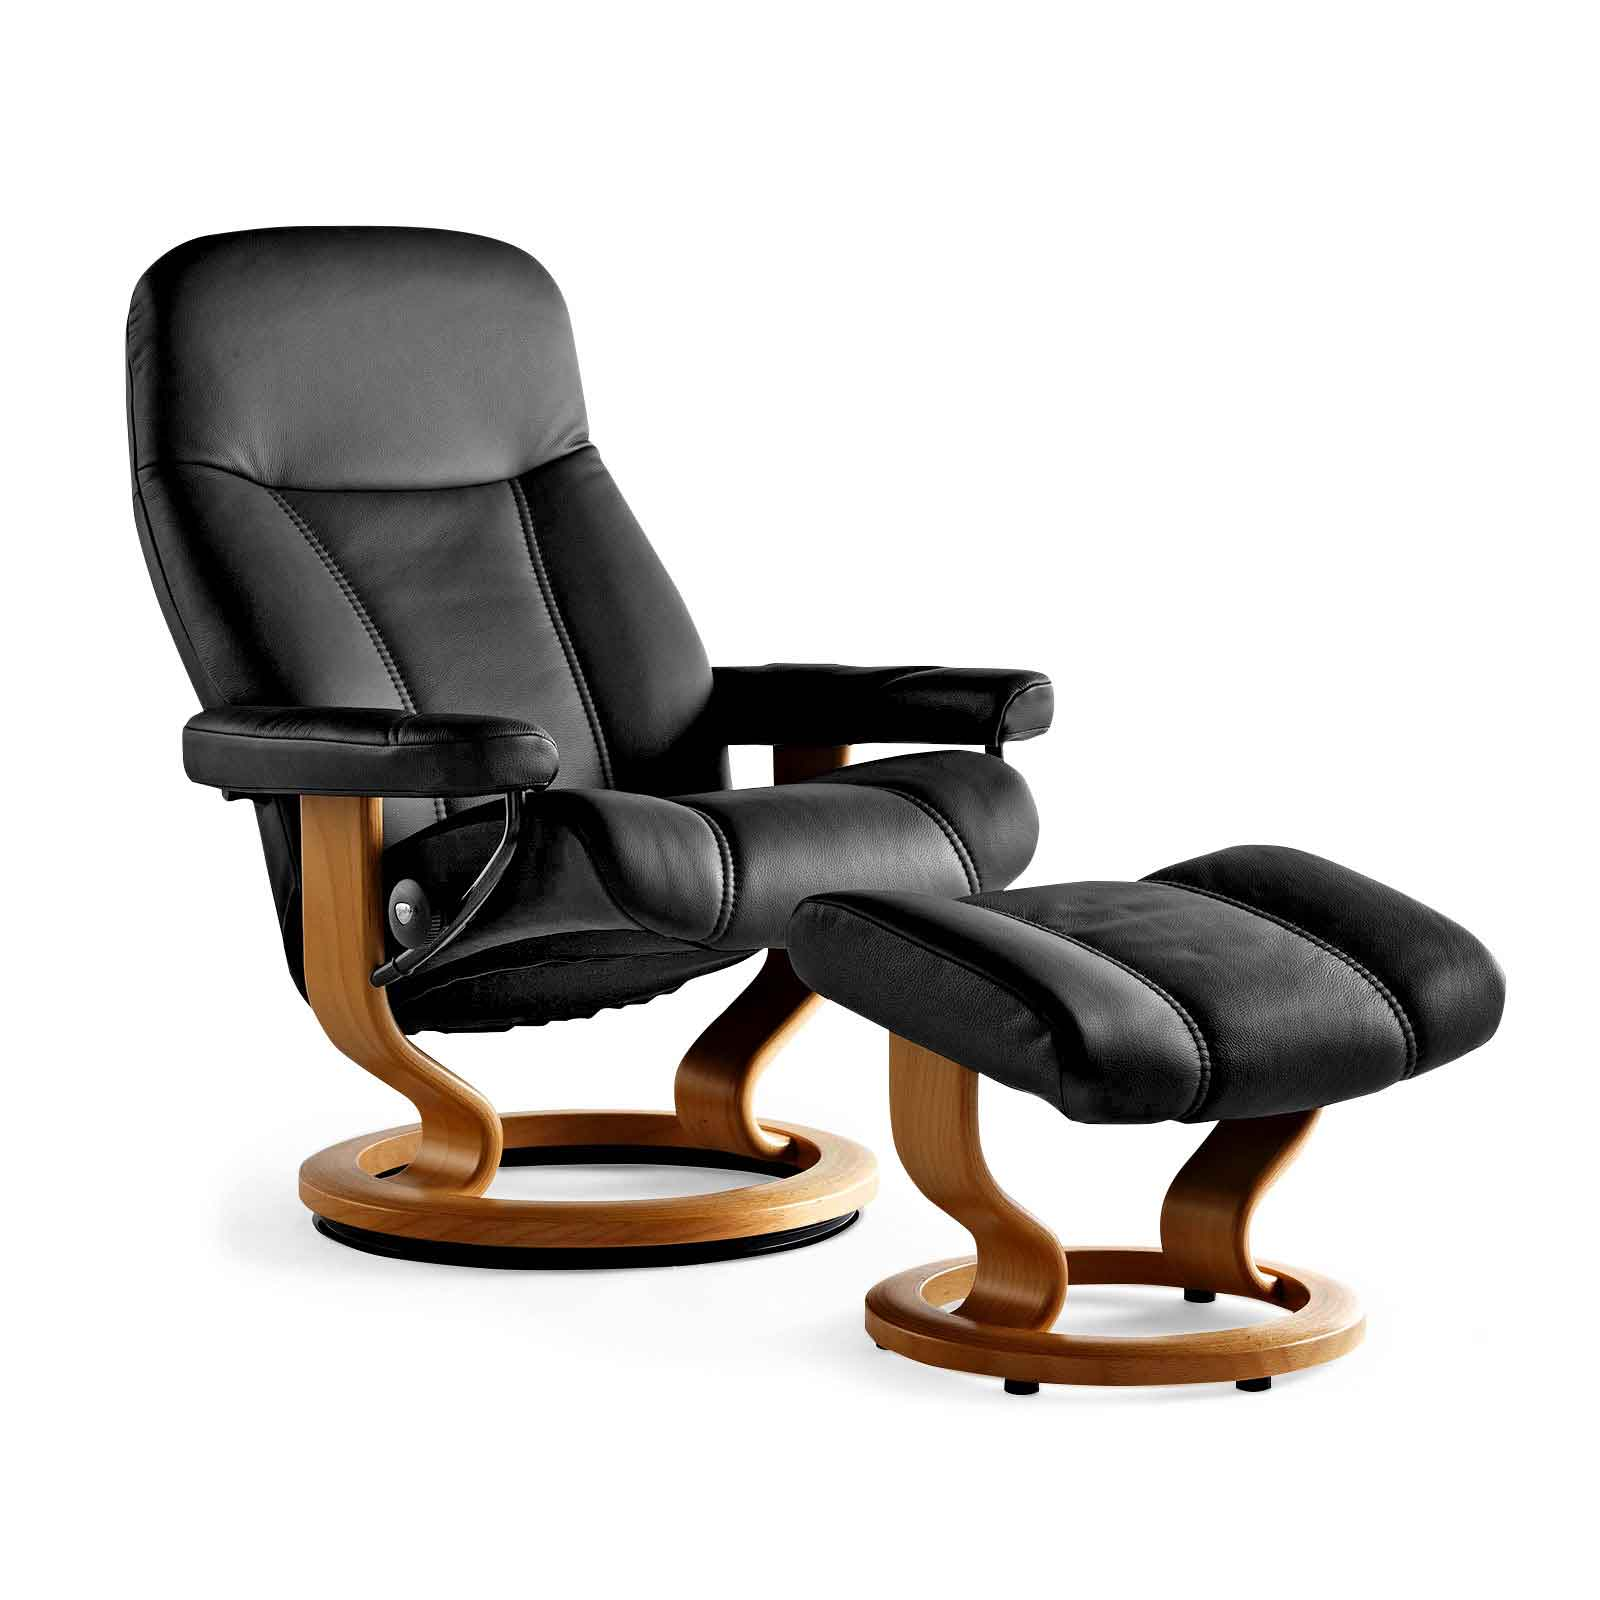 Stressless Sessel City Stressless Sessel Consul Batick Schwarz Hocker | Stressless